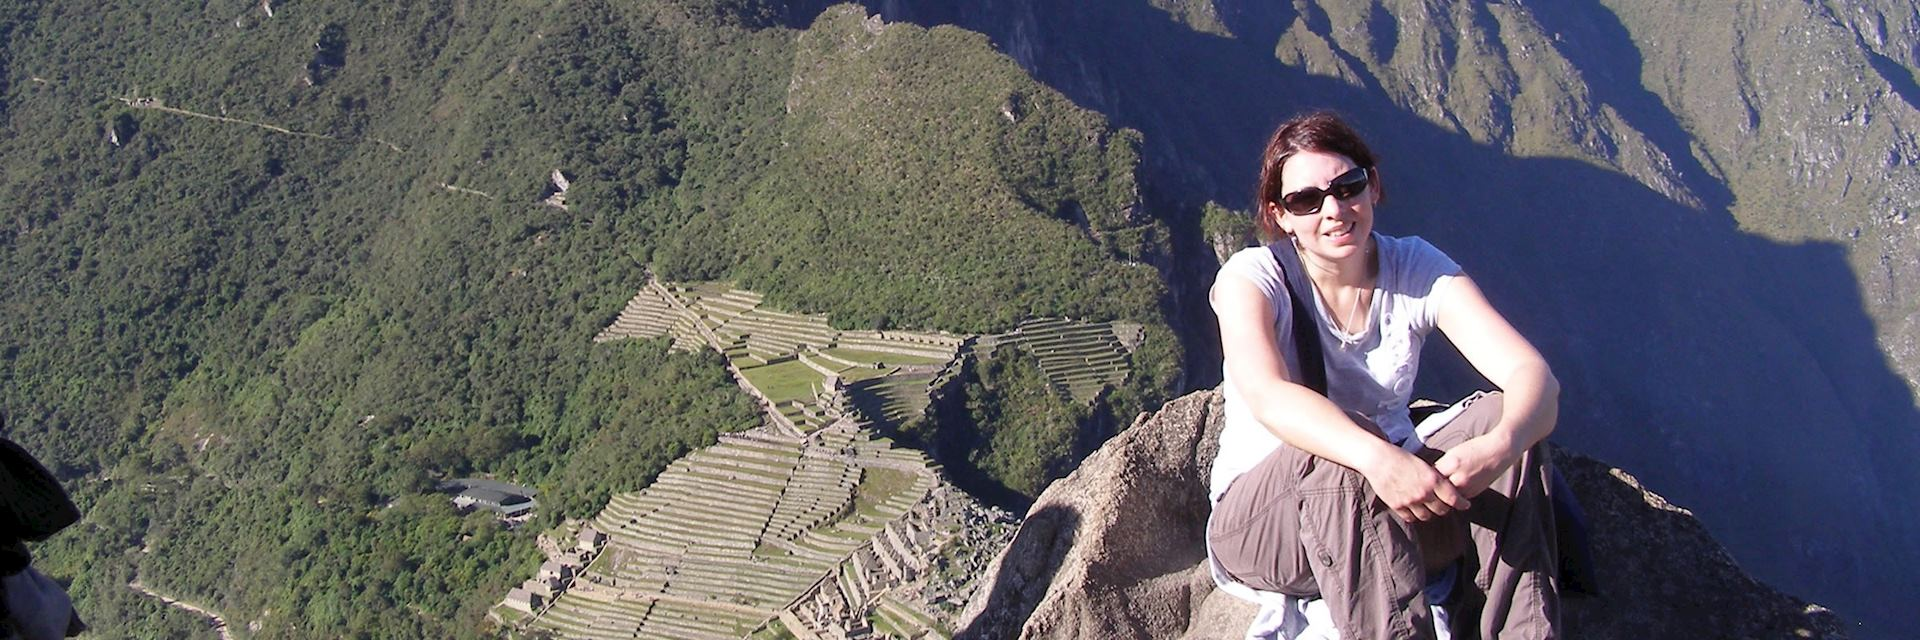 Joanna at Machu Picchu in Peru